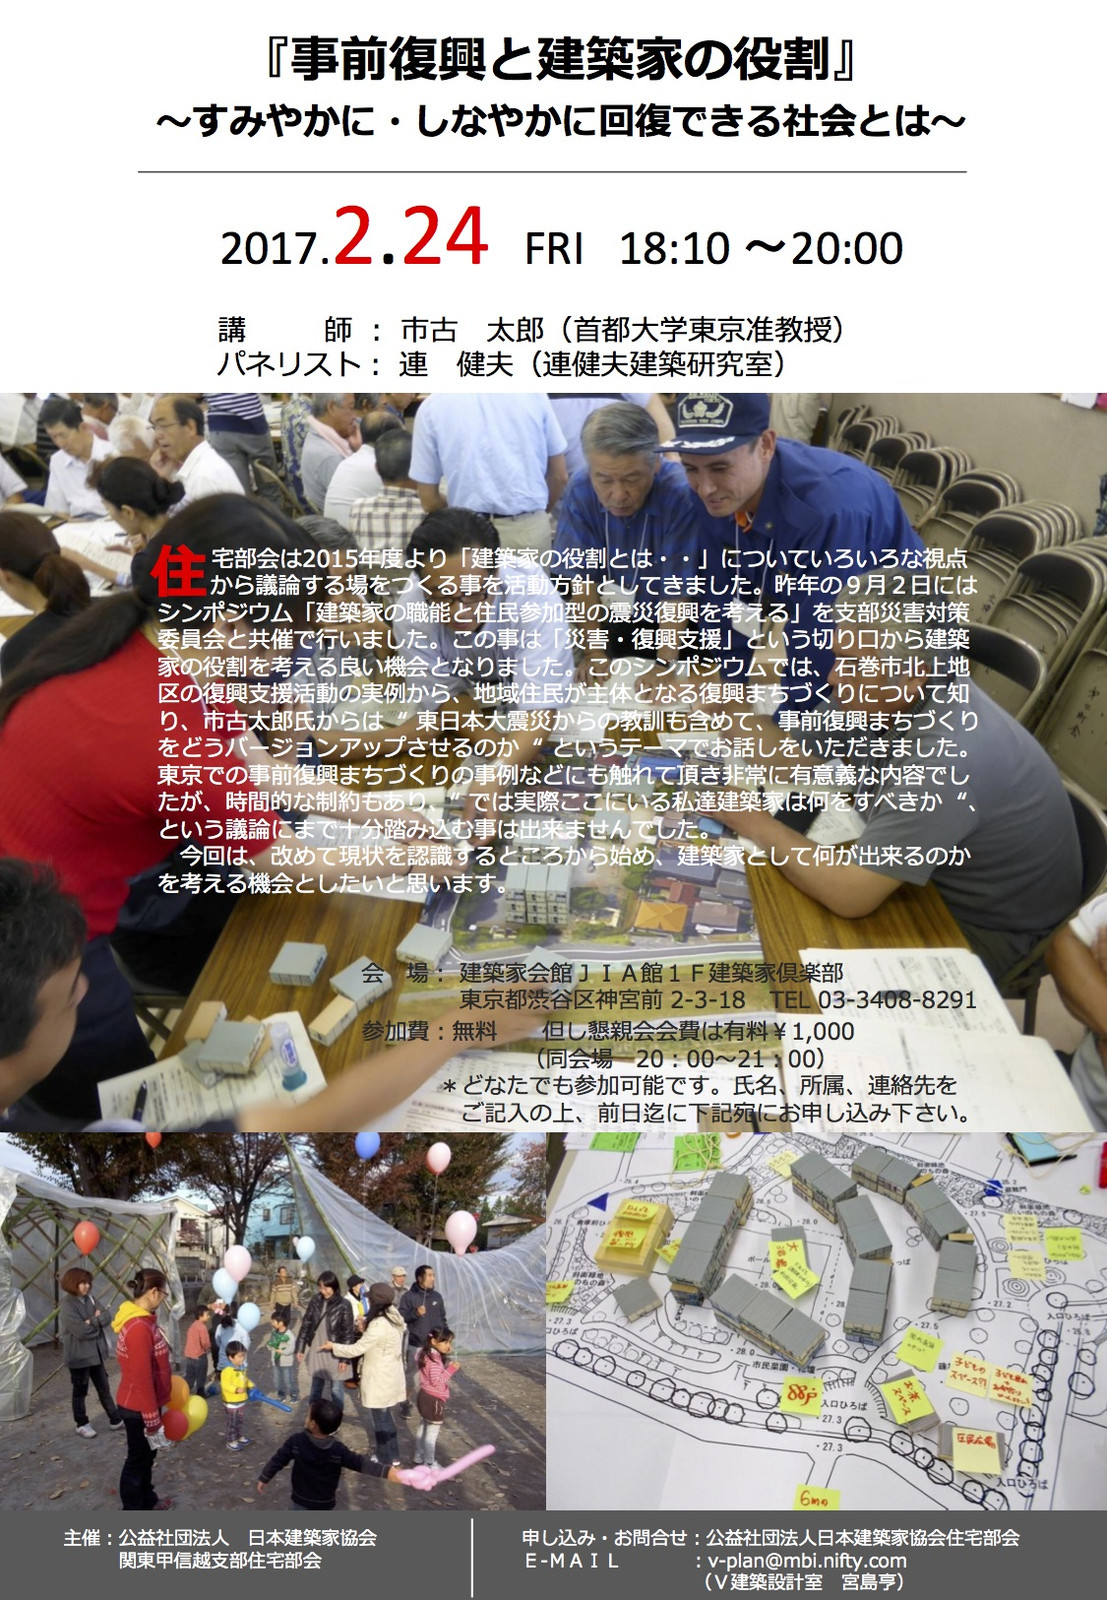 20170224jia_flyer_fin